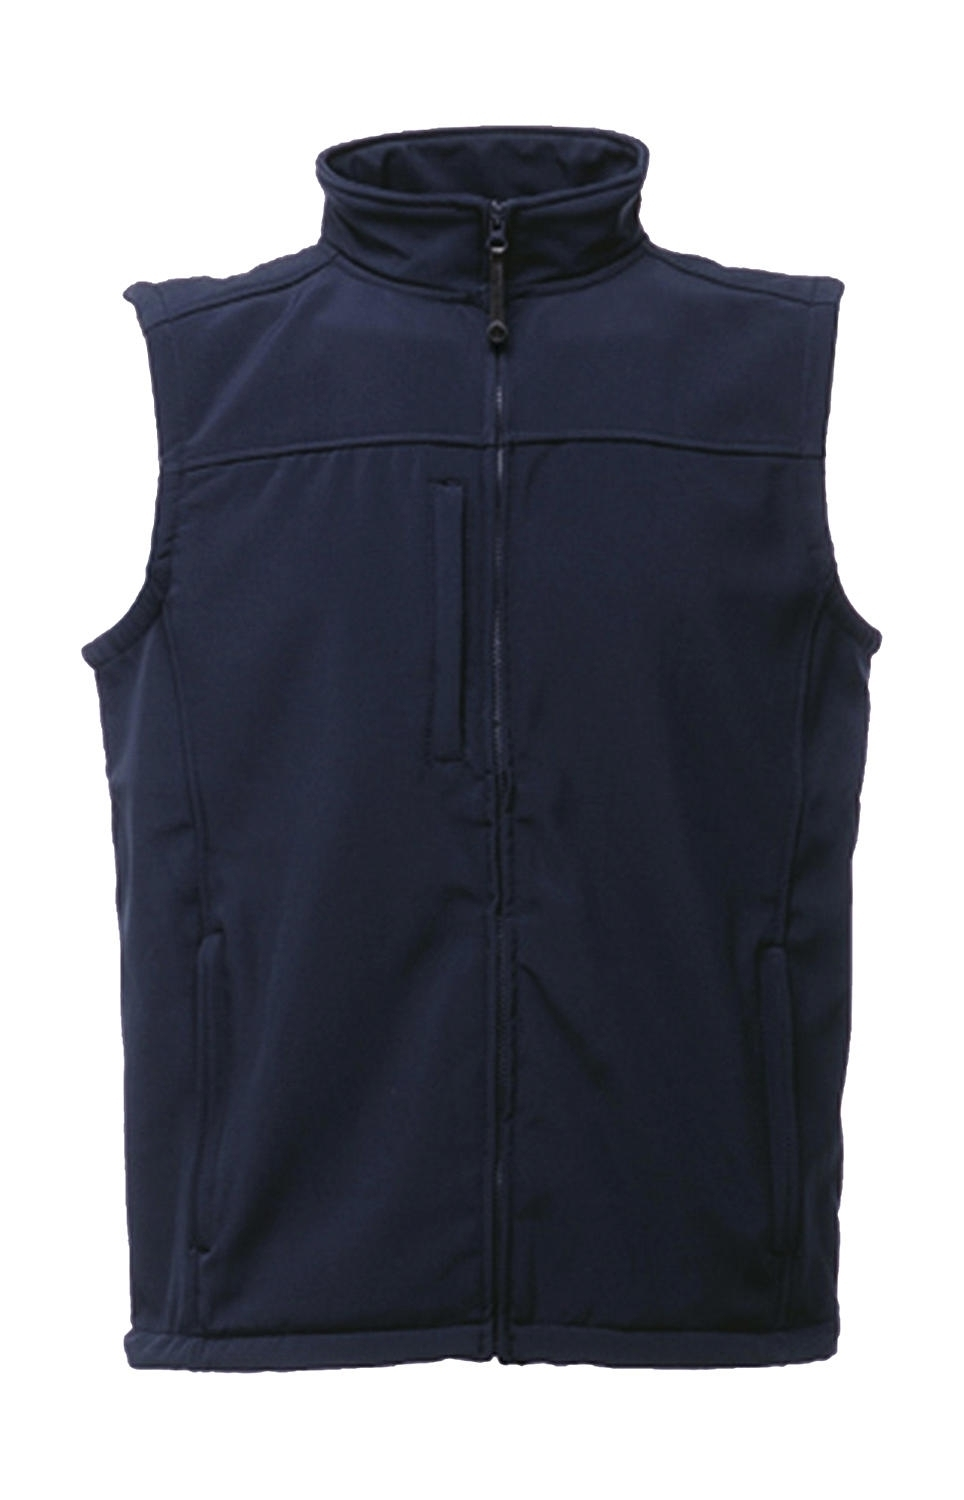 Flux Softshell Bodywarmer Navy/Navy Bleu